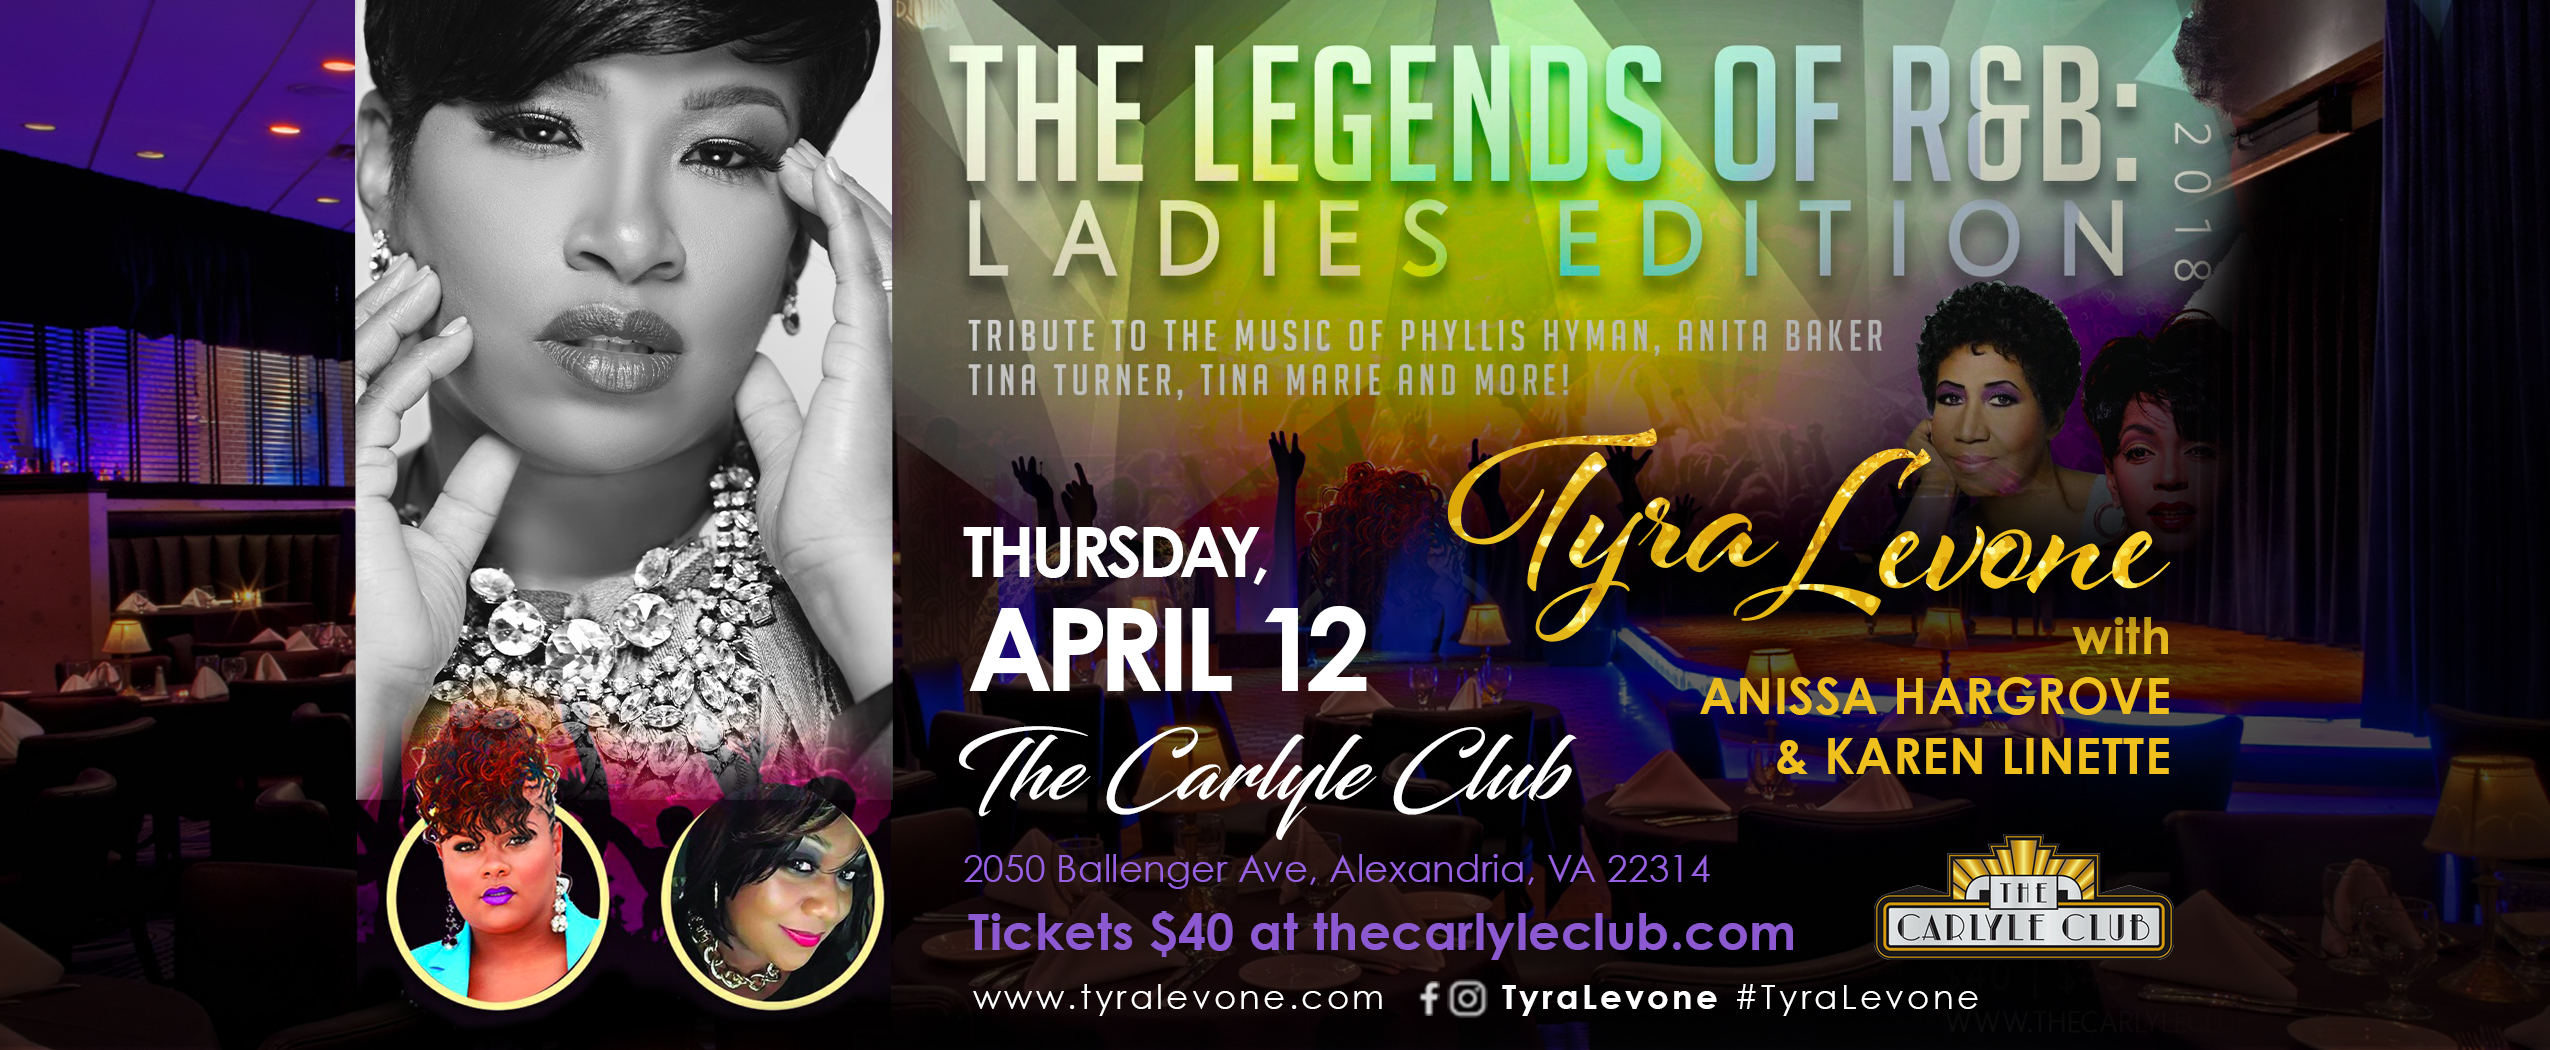 Tyra Levone Legends of R&B concert at The Carlyle Club